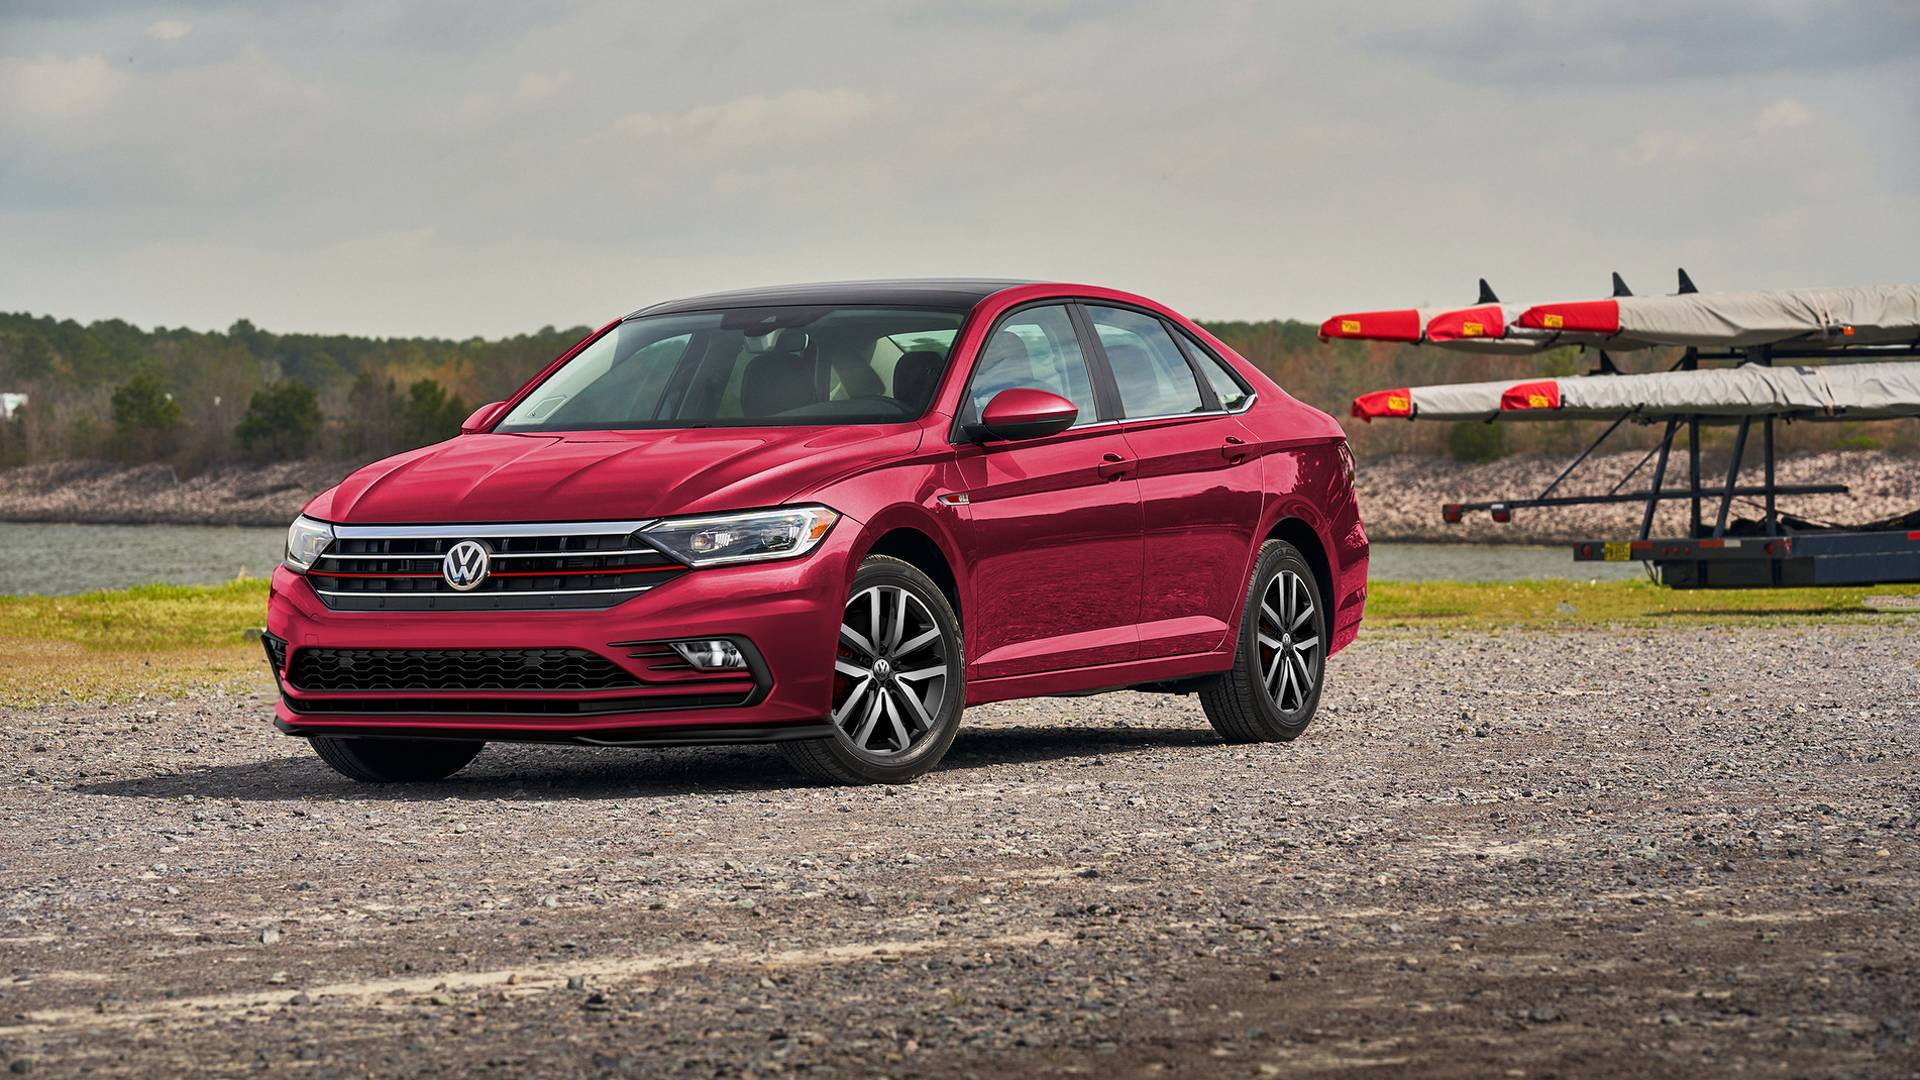 60 The Best 2020 VW Jetta Tdi Gli Prices